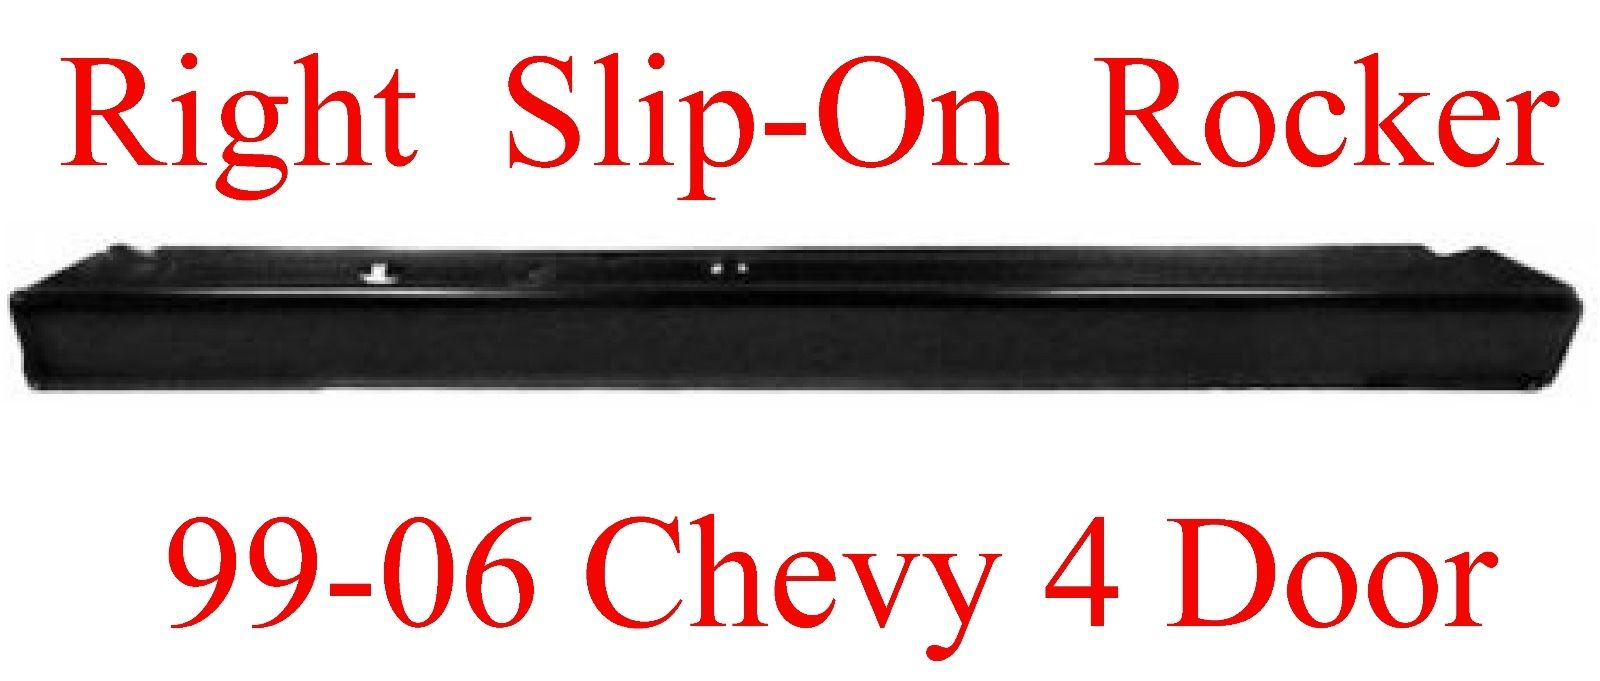 99-06 Chevy GMC Right Slip-On Rocker For Extended Cab